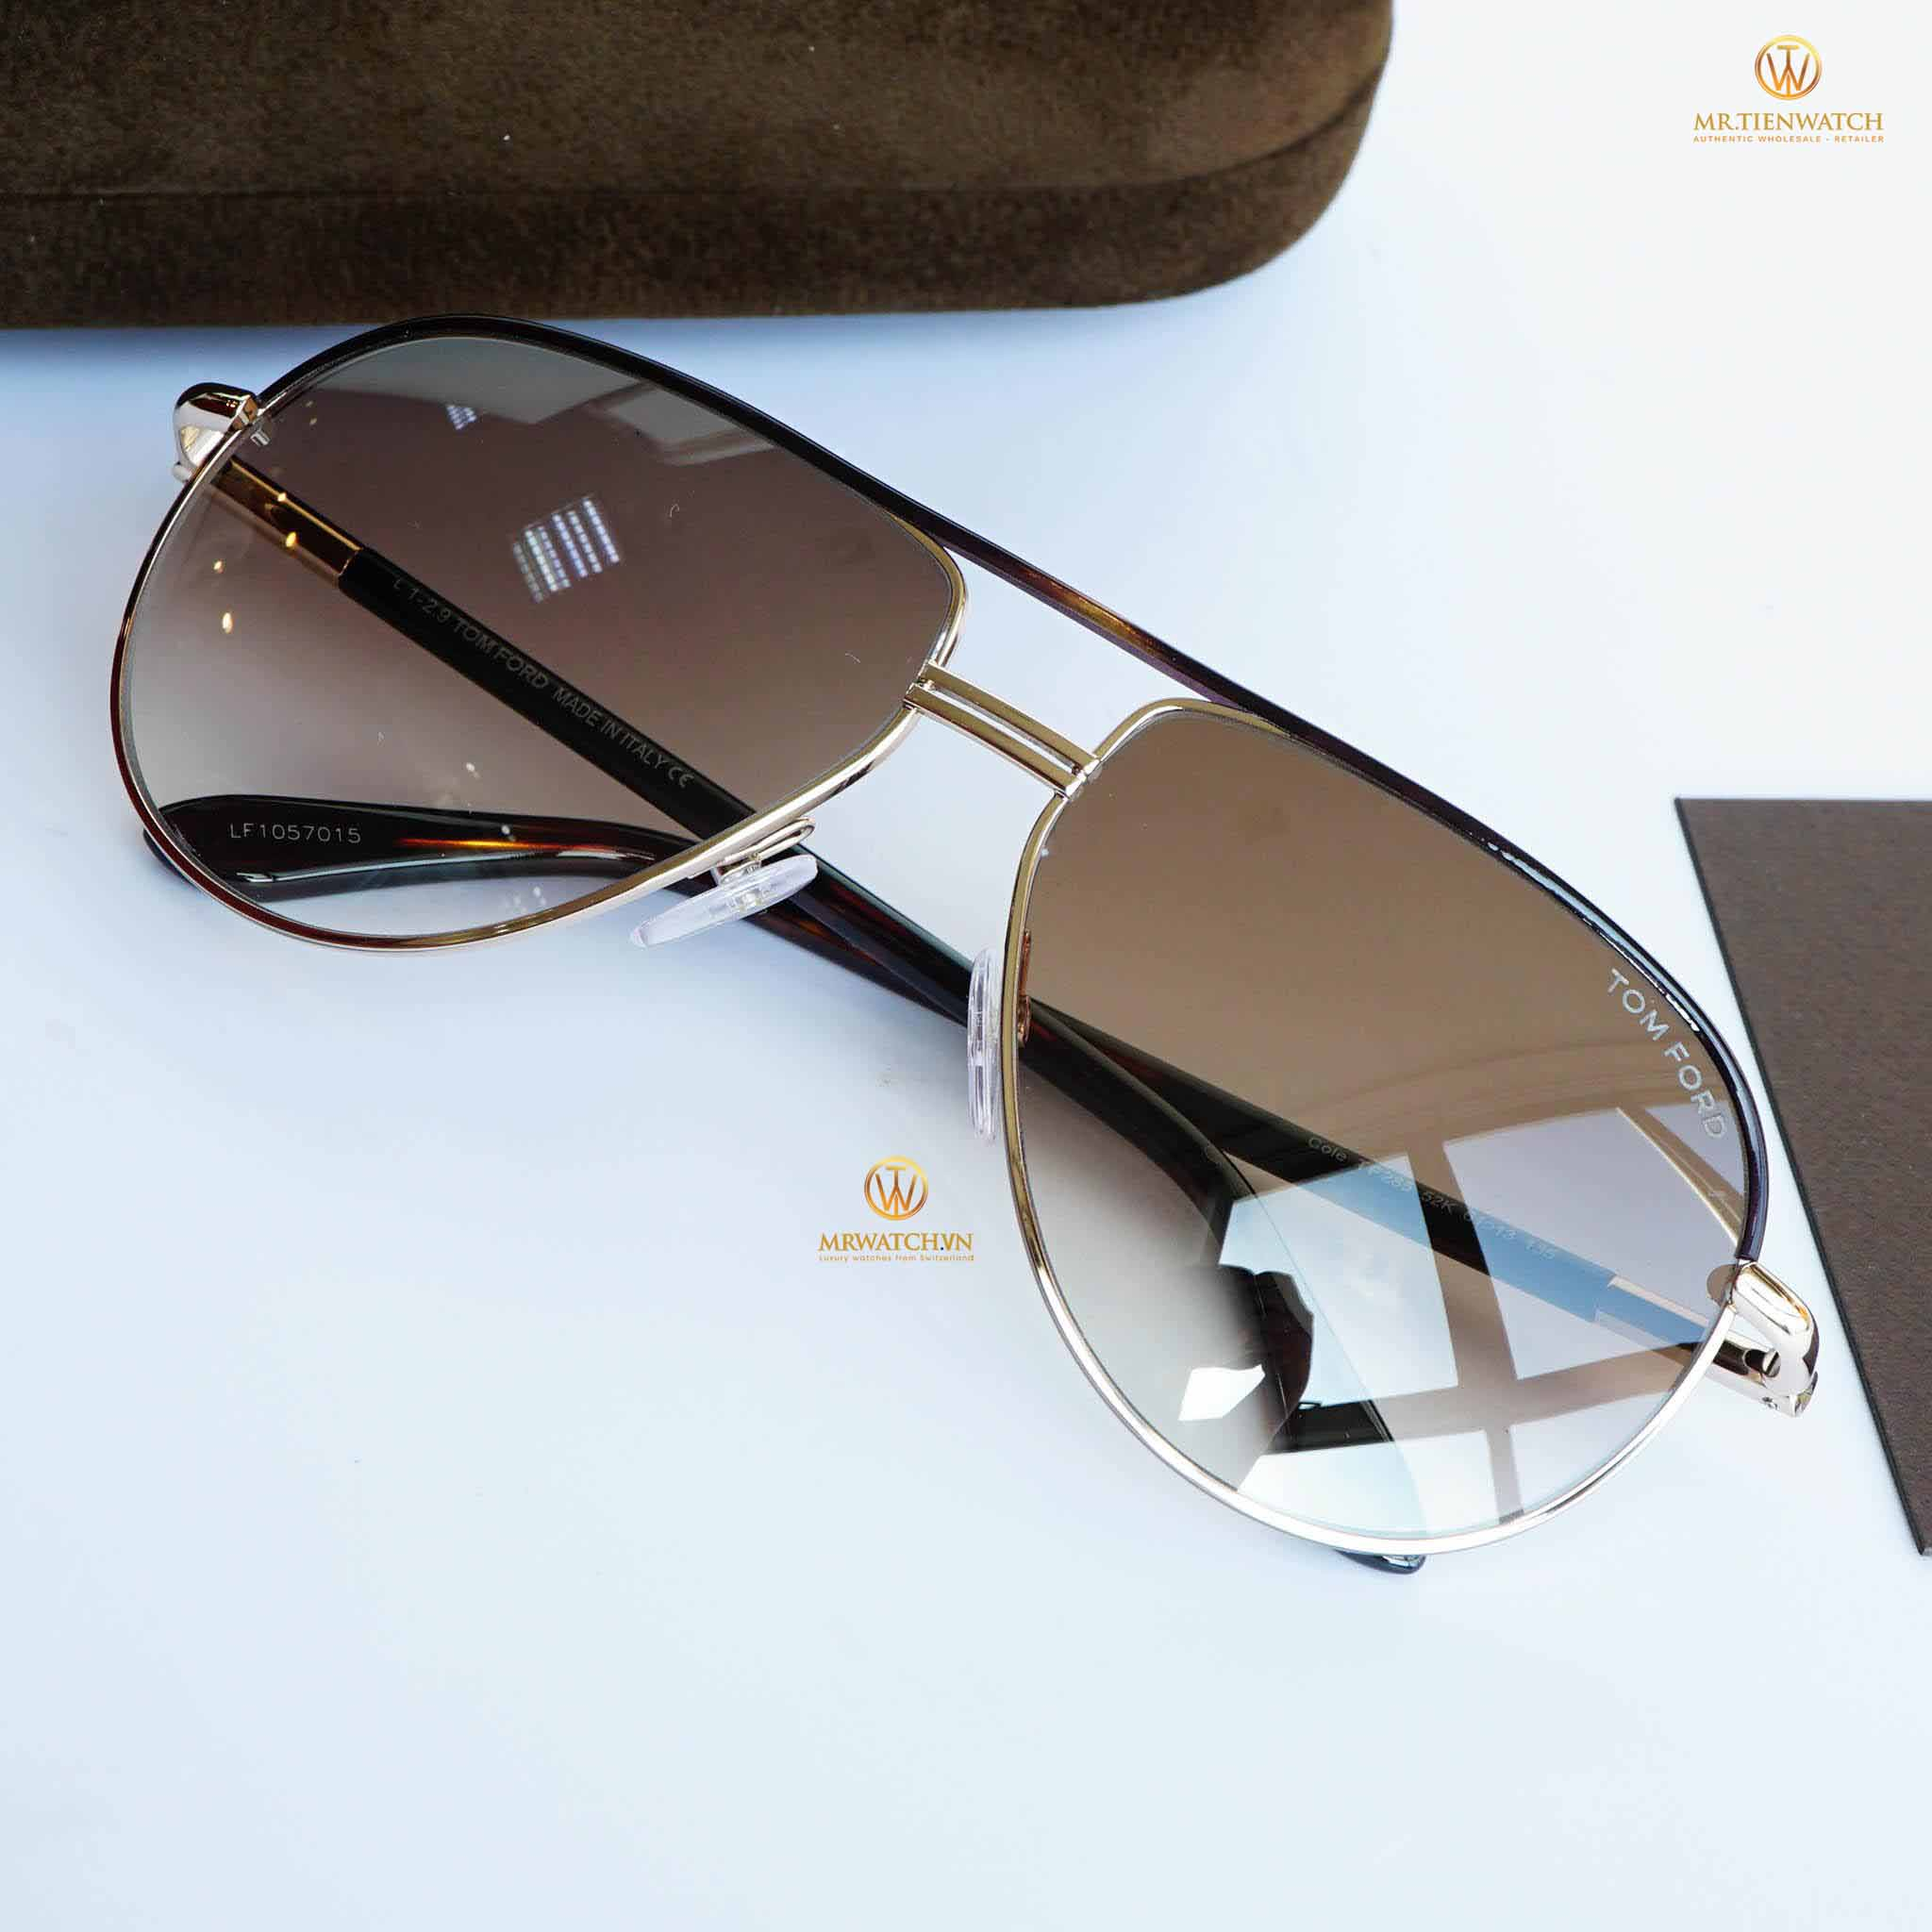 Tom Ford 2016 Aviator 0285 bkack gold brown gradient - TF FT 285 52K Kim loại Metal vàng đen